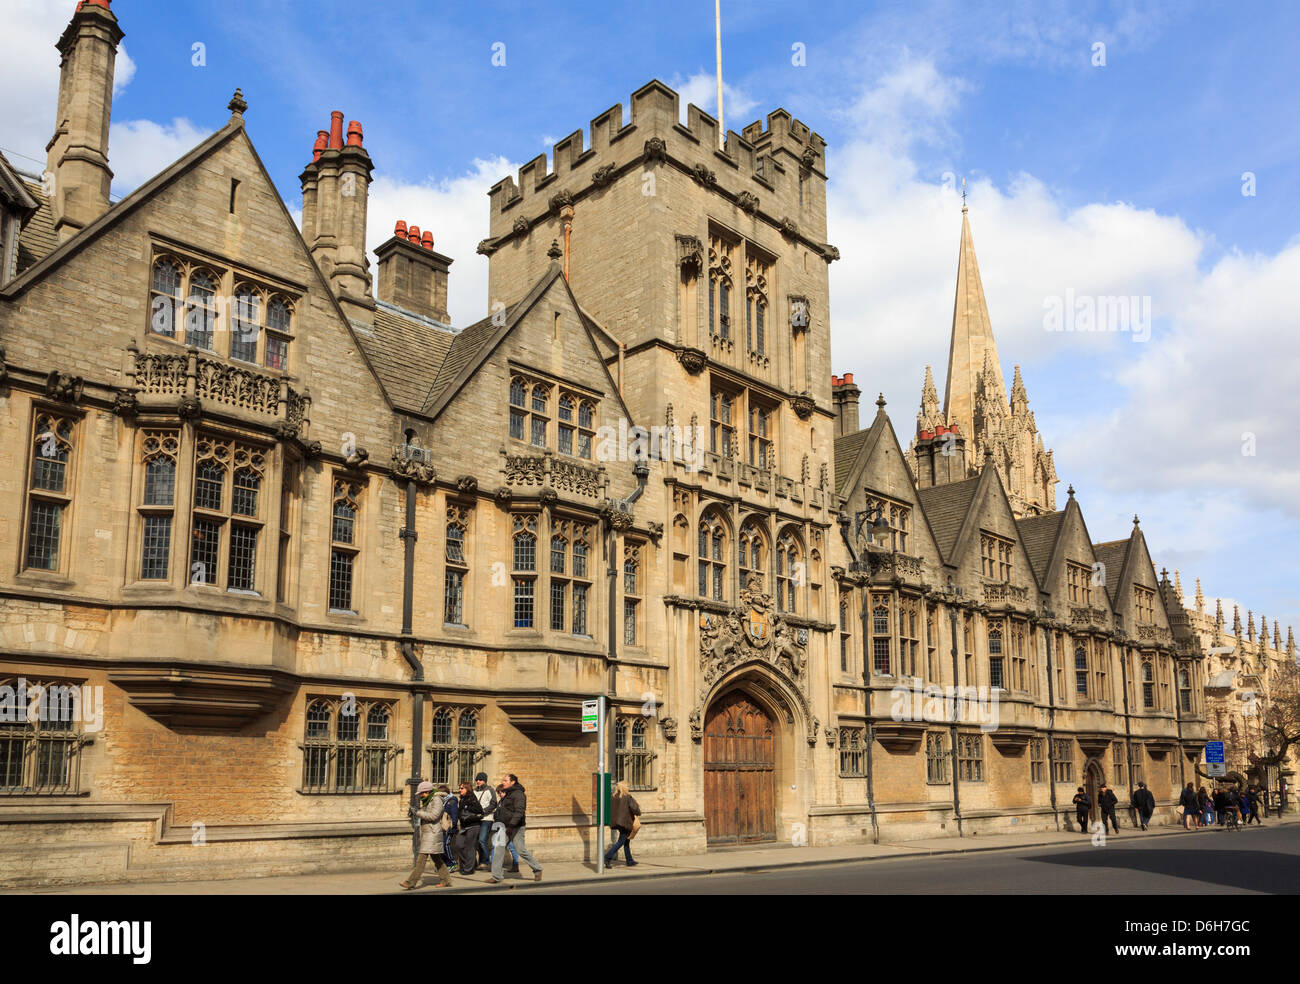 The King's Hall and College of Brasenose (BNC) building designed by Thomas G Jackson. Oxford, Oxfordshire, England, - Stock Image